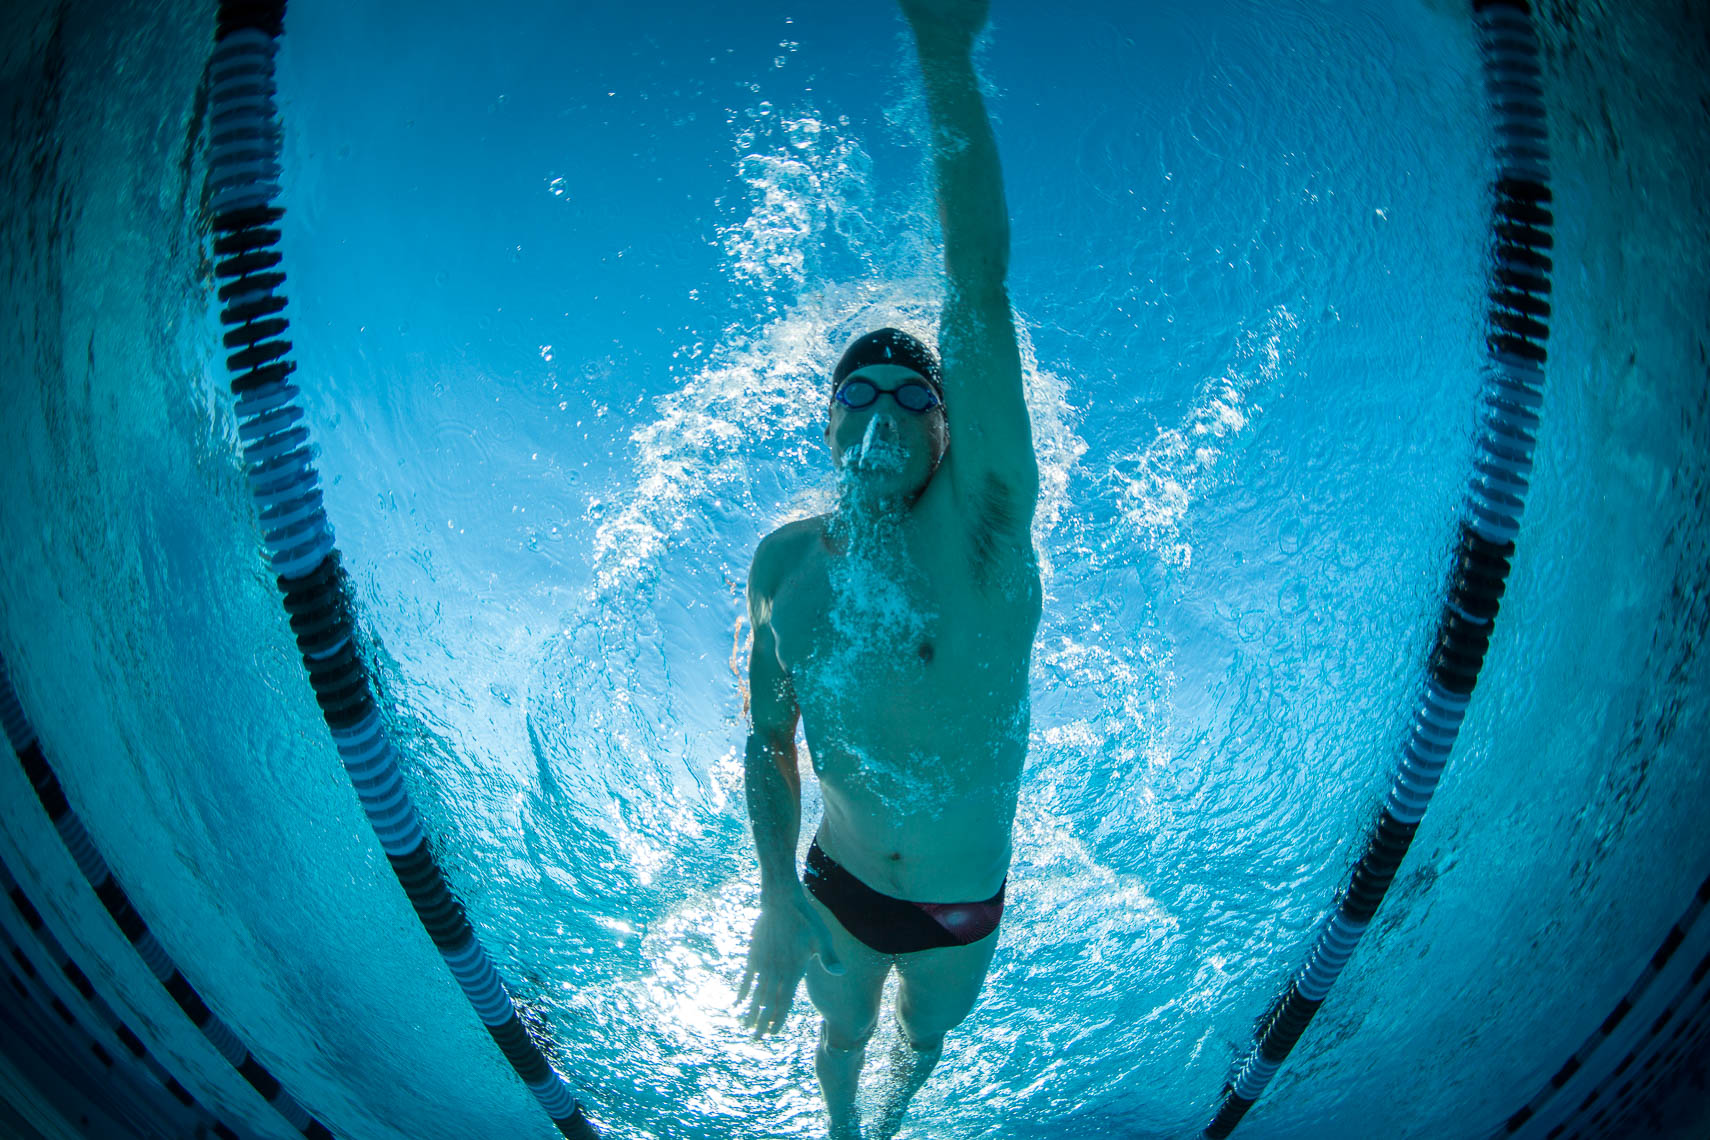 Professional Triathlete Matt Lieto Pool Training